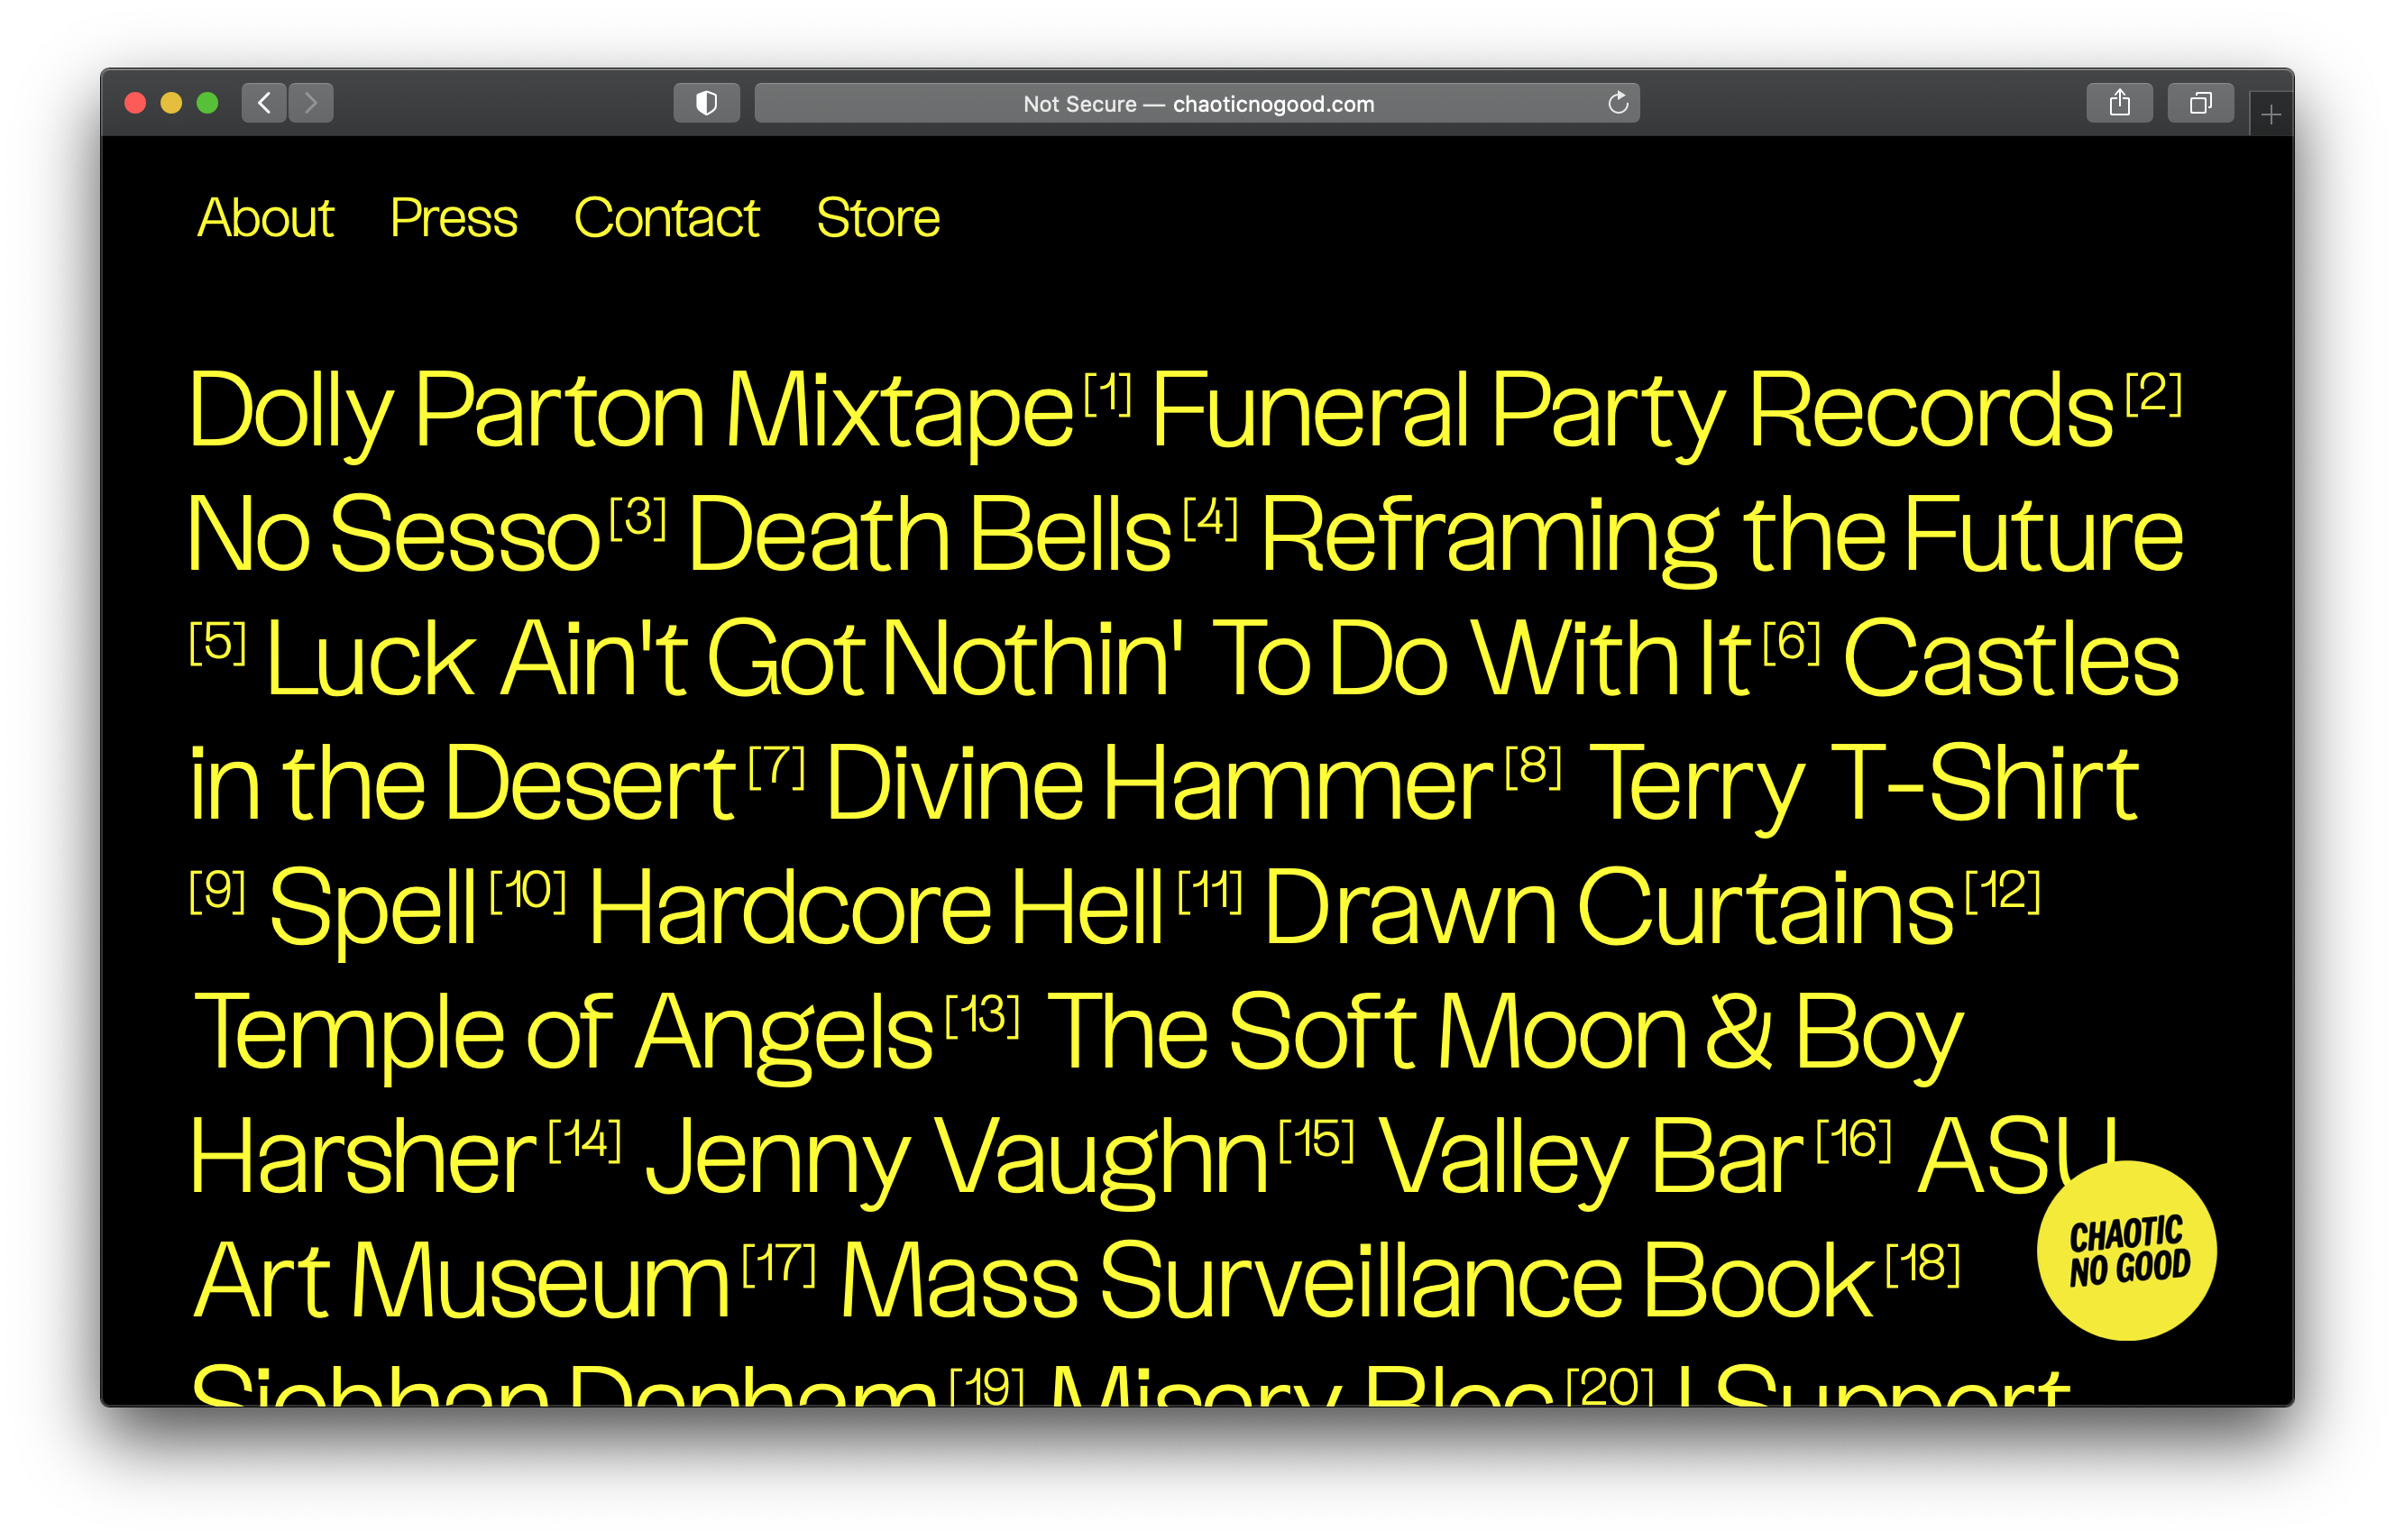 The new website of Chaotic No Good is entirely typeset in Uxum Grotesque by Bureau Nuit